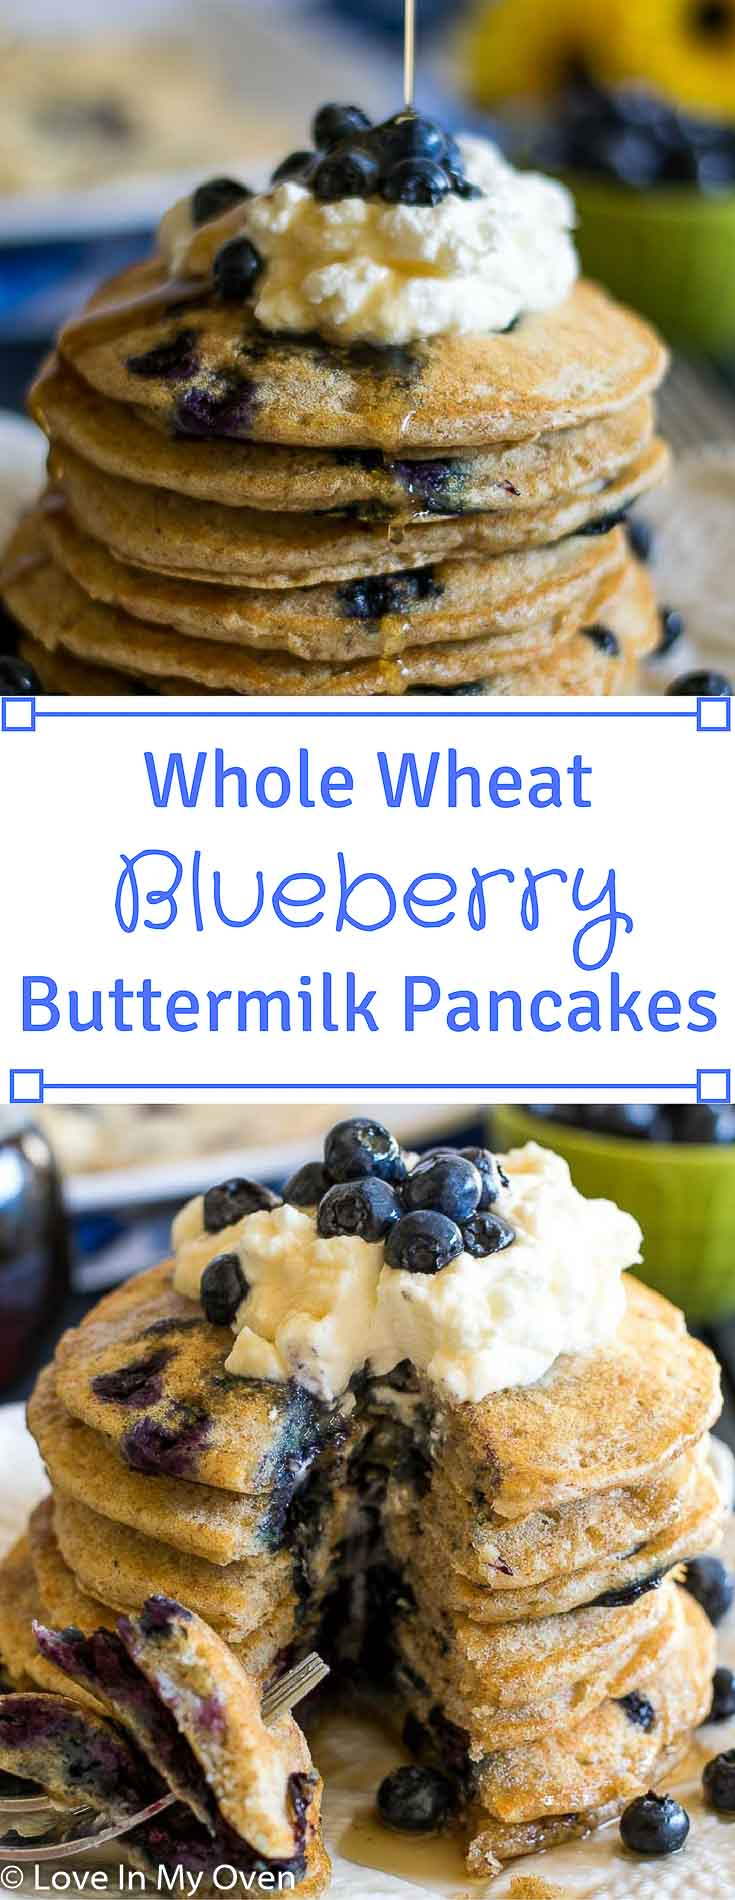 Fluffy, soft, blueberry-studded whole wheat buttermilk pancakes. They're a weekend breakfast game-changer!